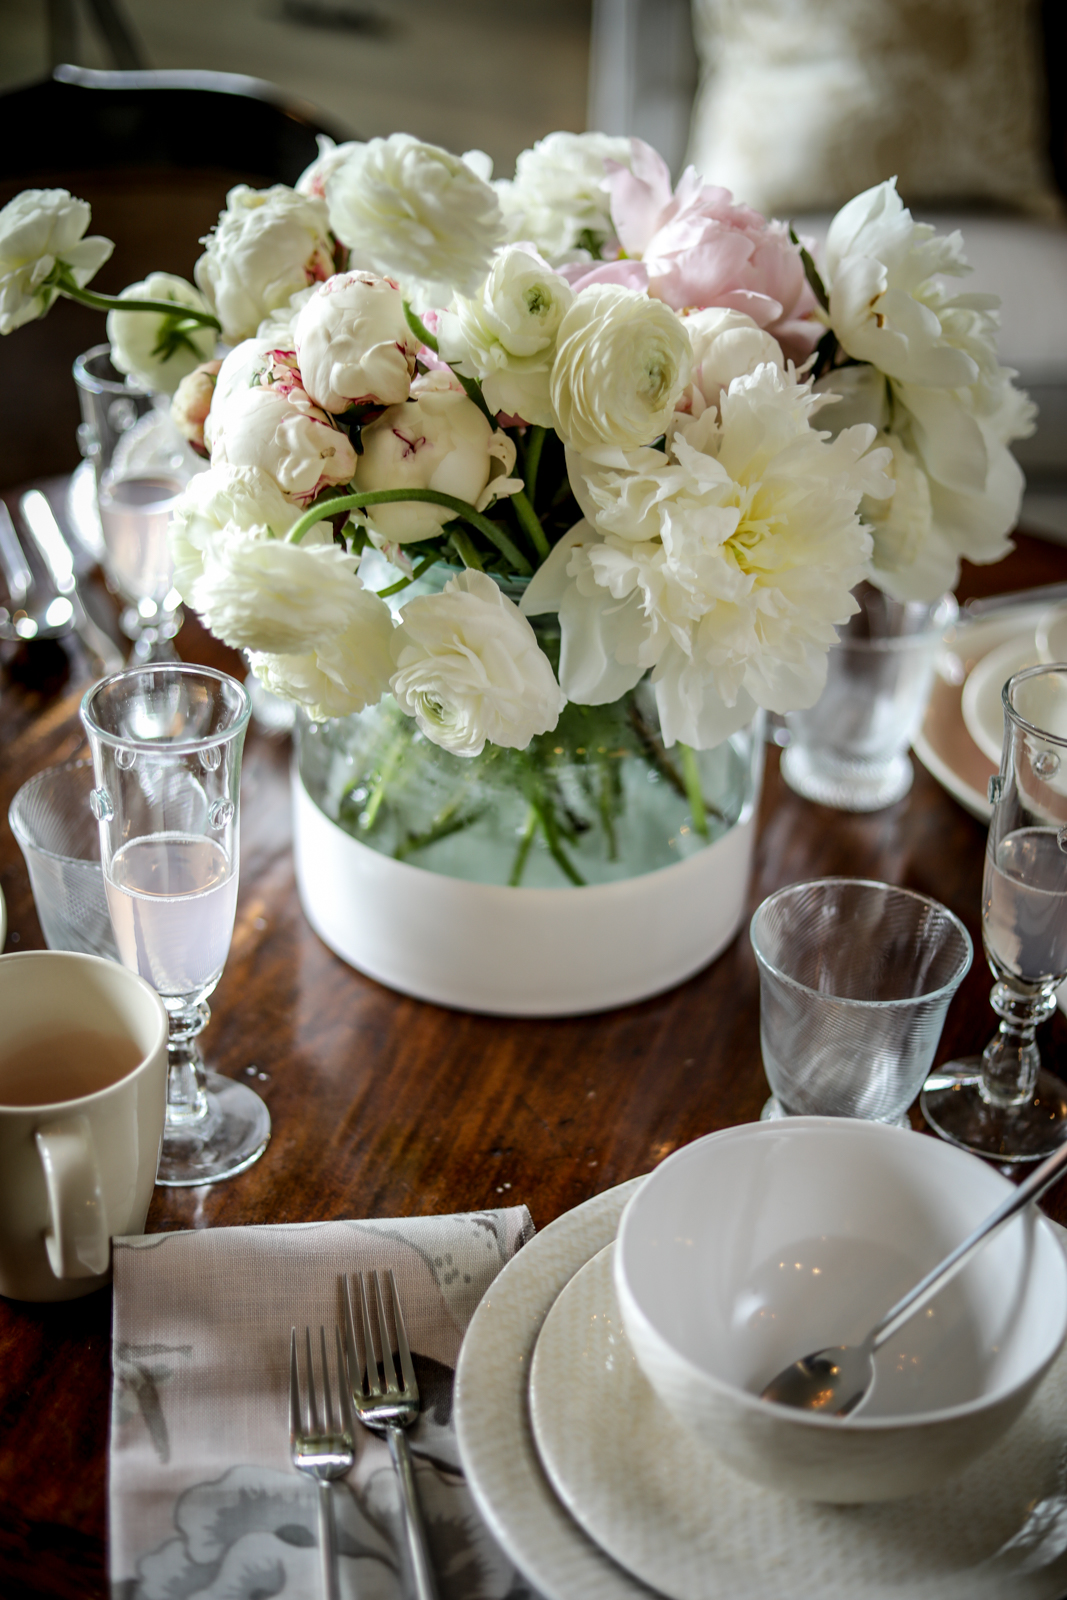 Brunch-Tablescape-White-Pink-Peonies-Rosé-Coffee.jpg